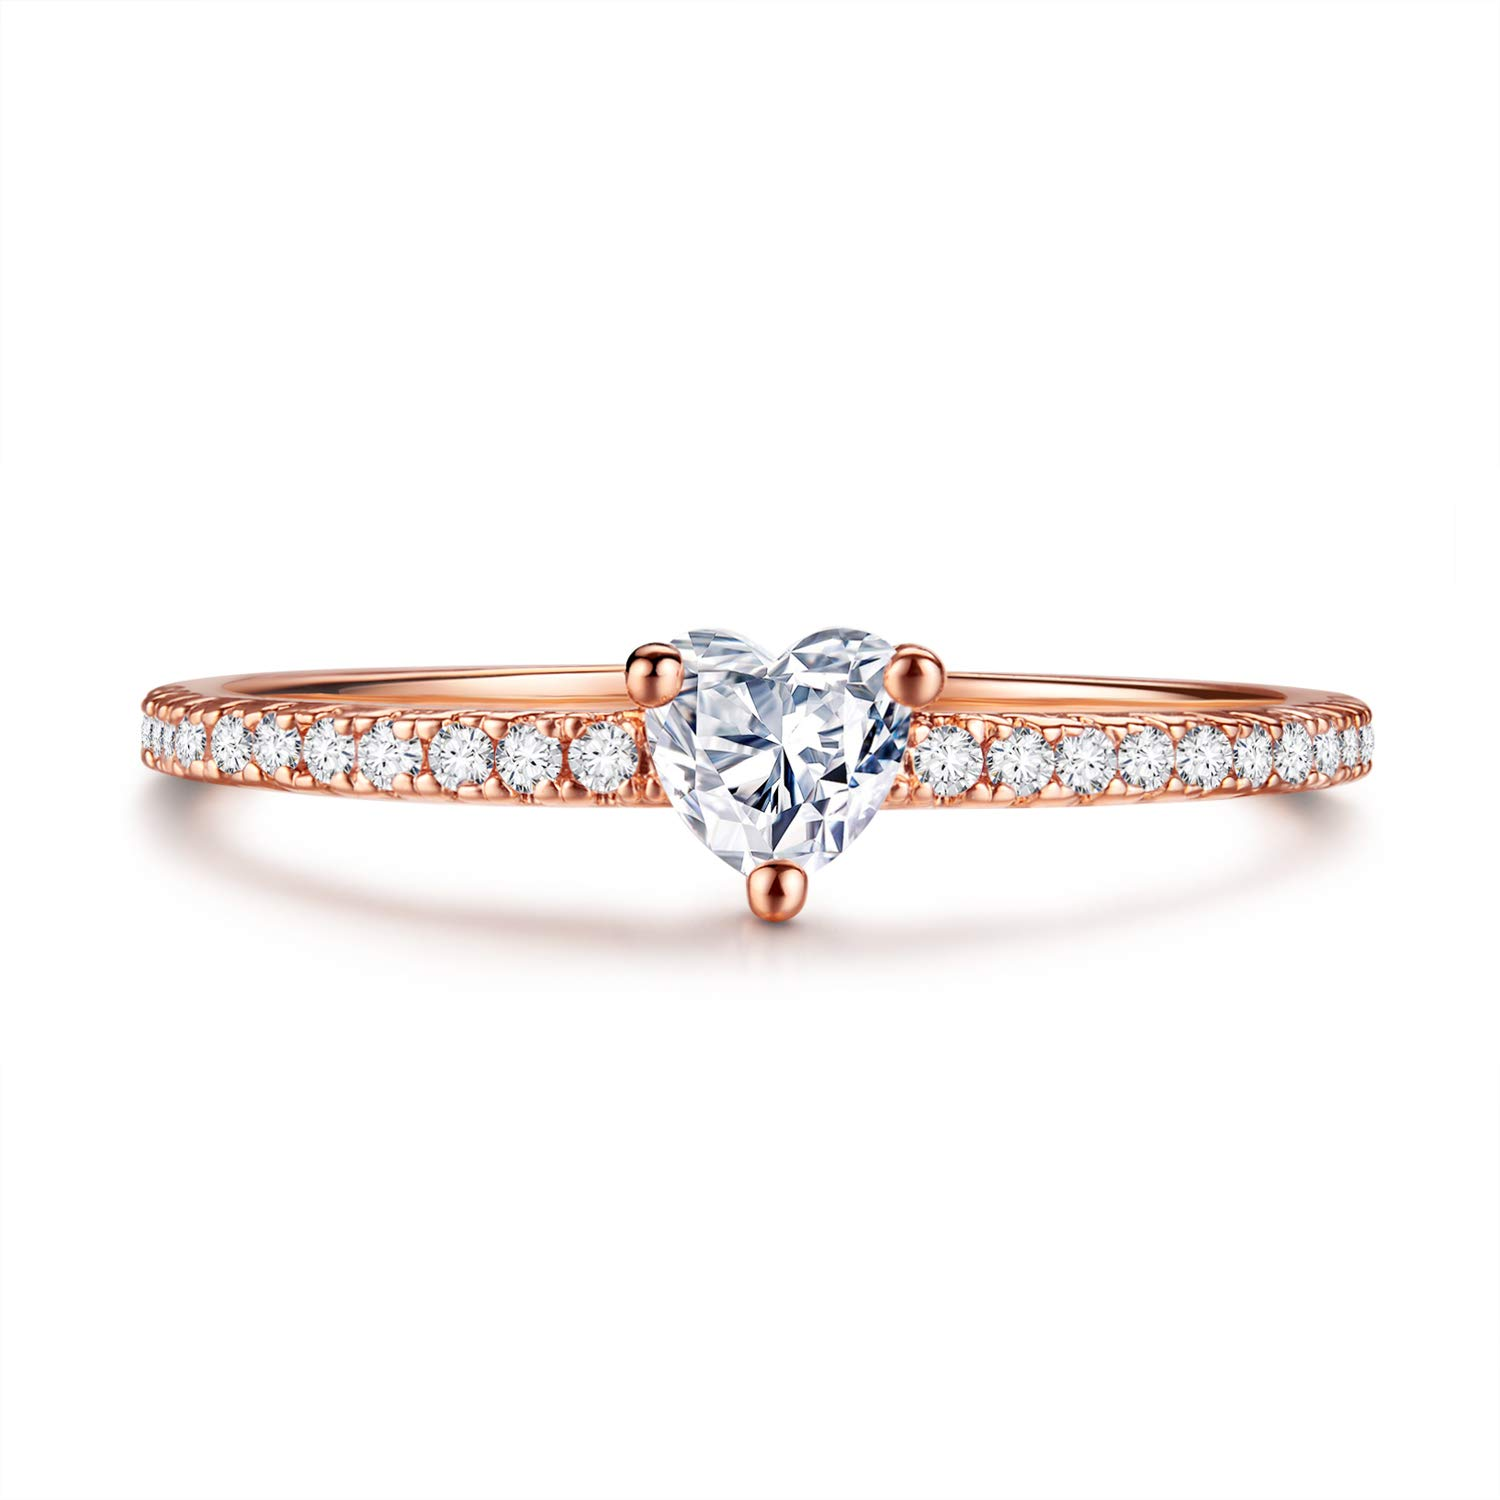 Kainier Engagement Rings CZ Heart Style 0.25ct Cubic Zirconia 14K Rose Gold Plated Promise Eternity Wedding Band for Girls and Women